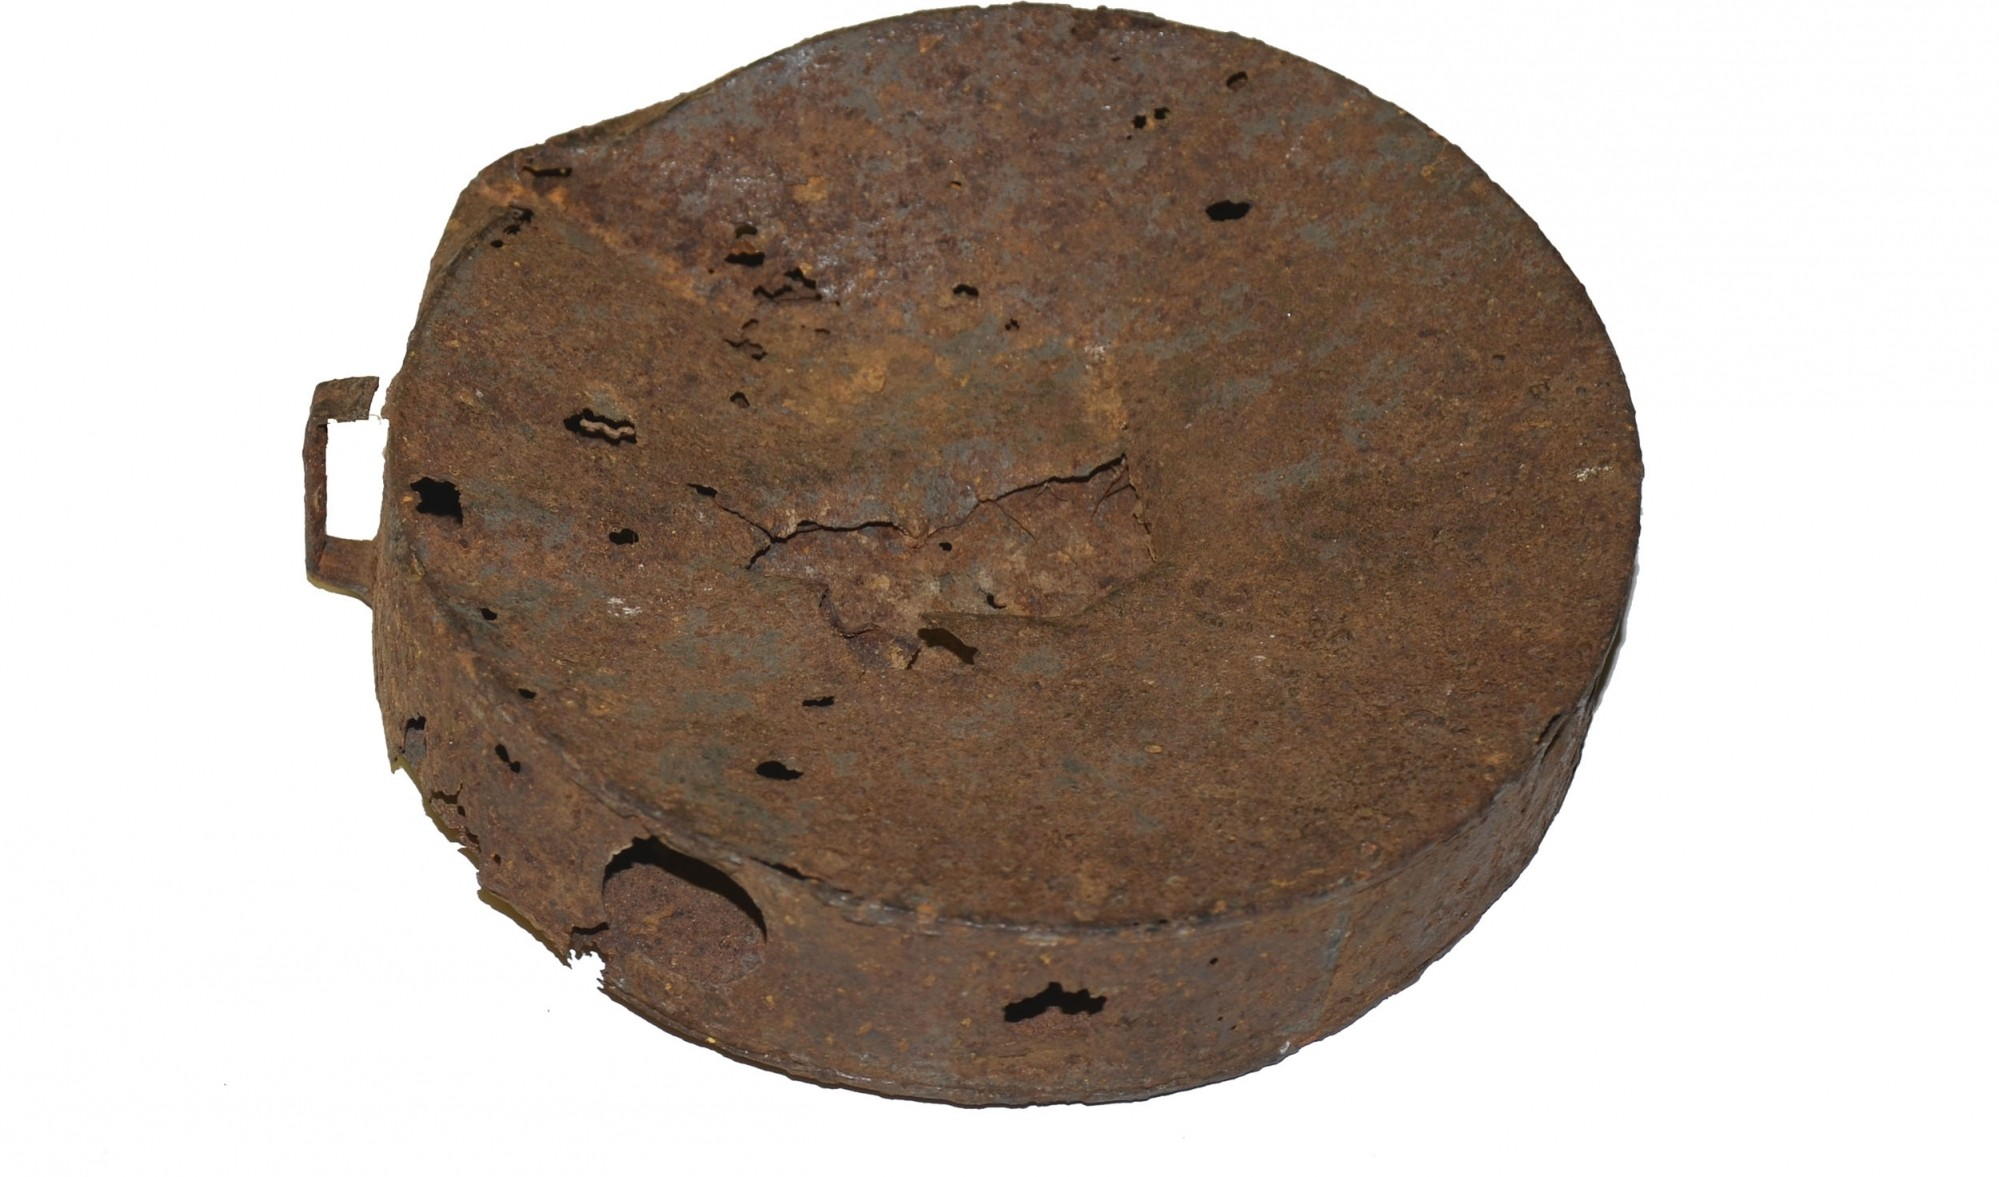 POSSIBLE STRUCK RELIC CANTEEN FROM PETERSBURG